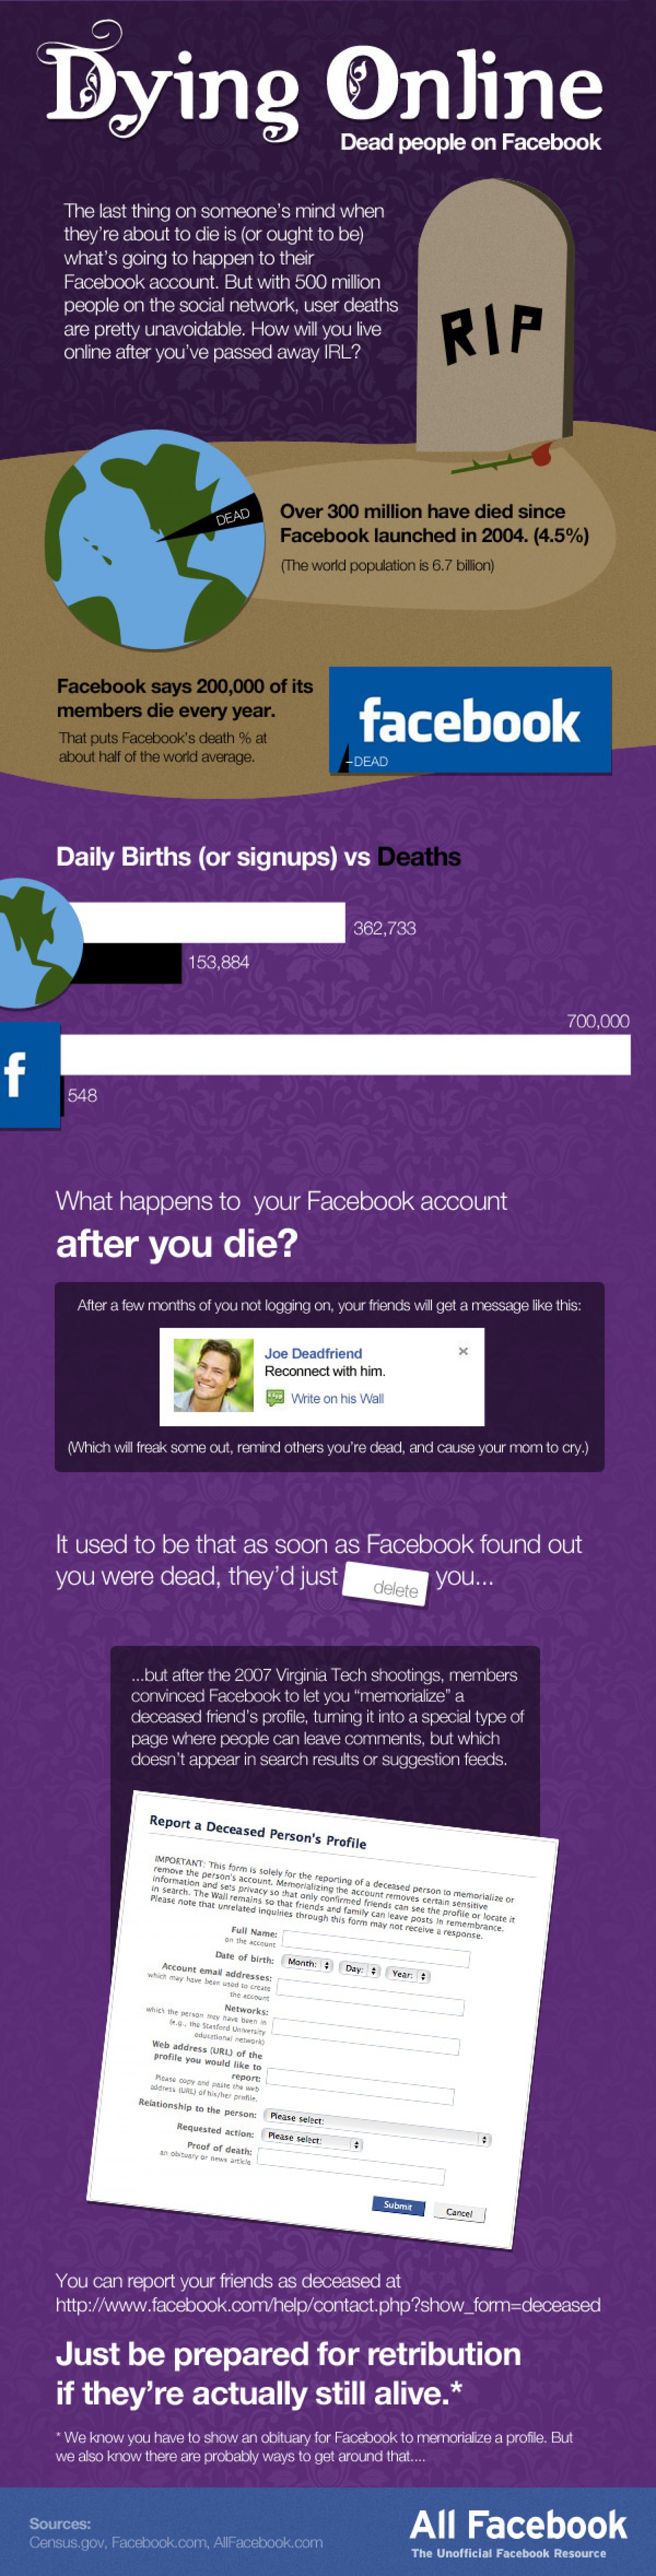 surprising-facts-about-death-on-facebook_50290a8b12252_w1500